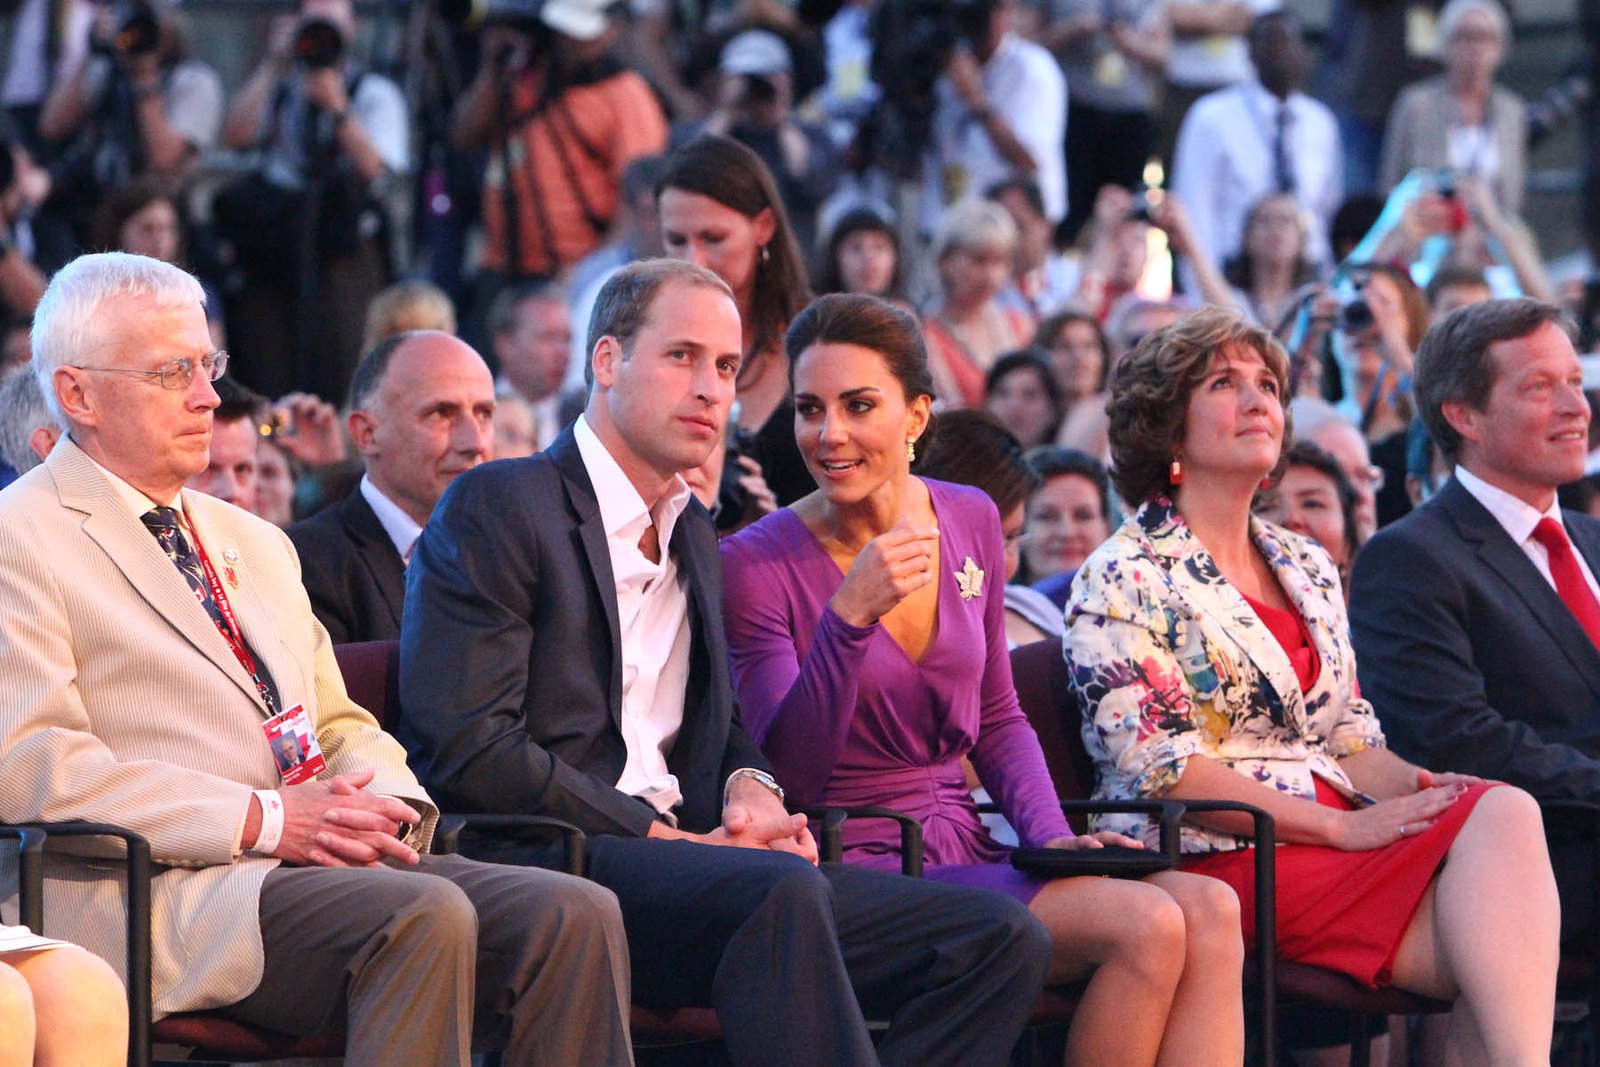 The Duke and Duchess of Cambridge watched fireworks at Canada Day during royal tour